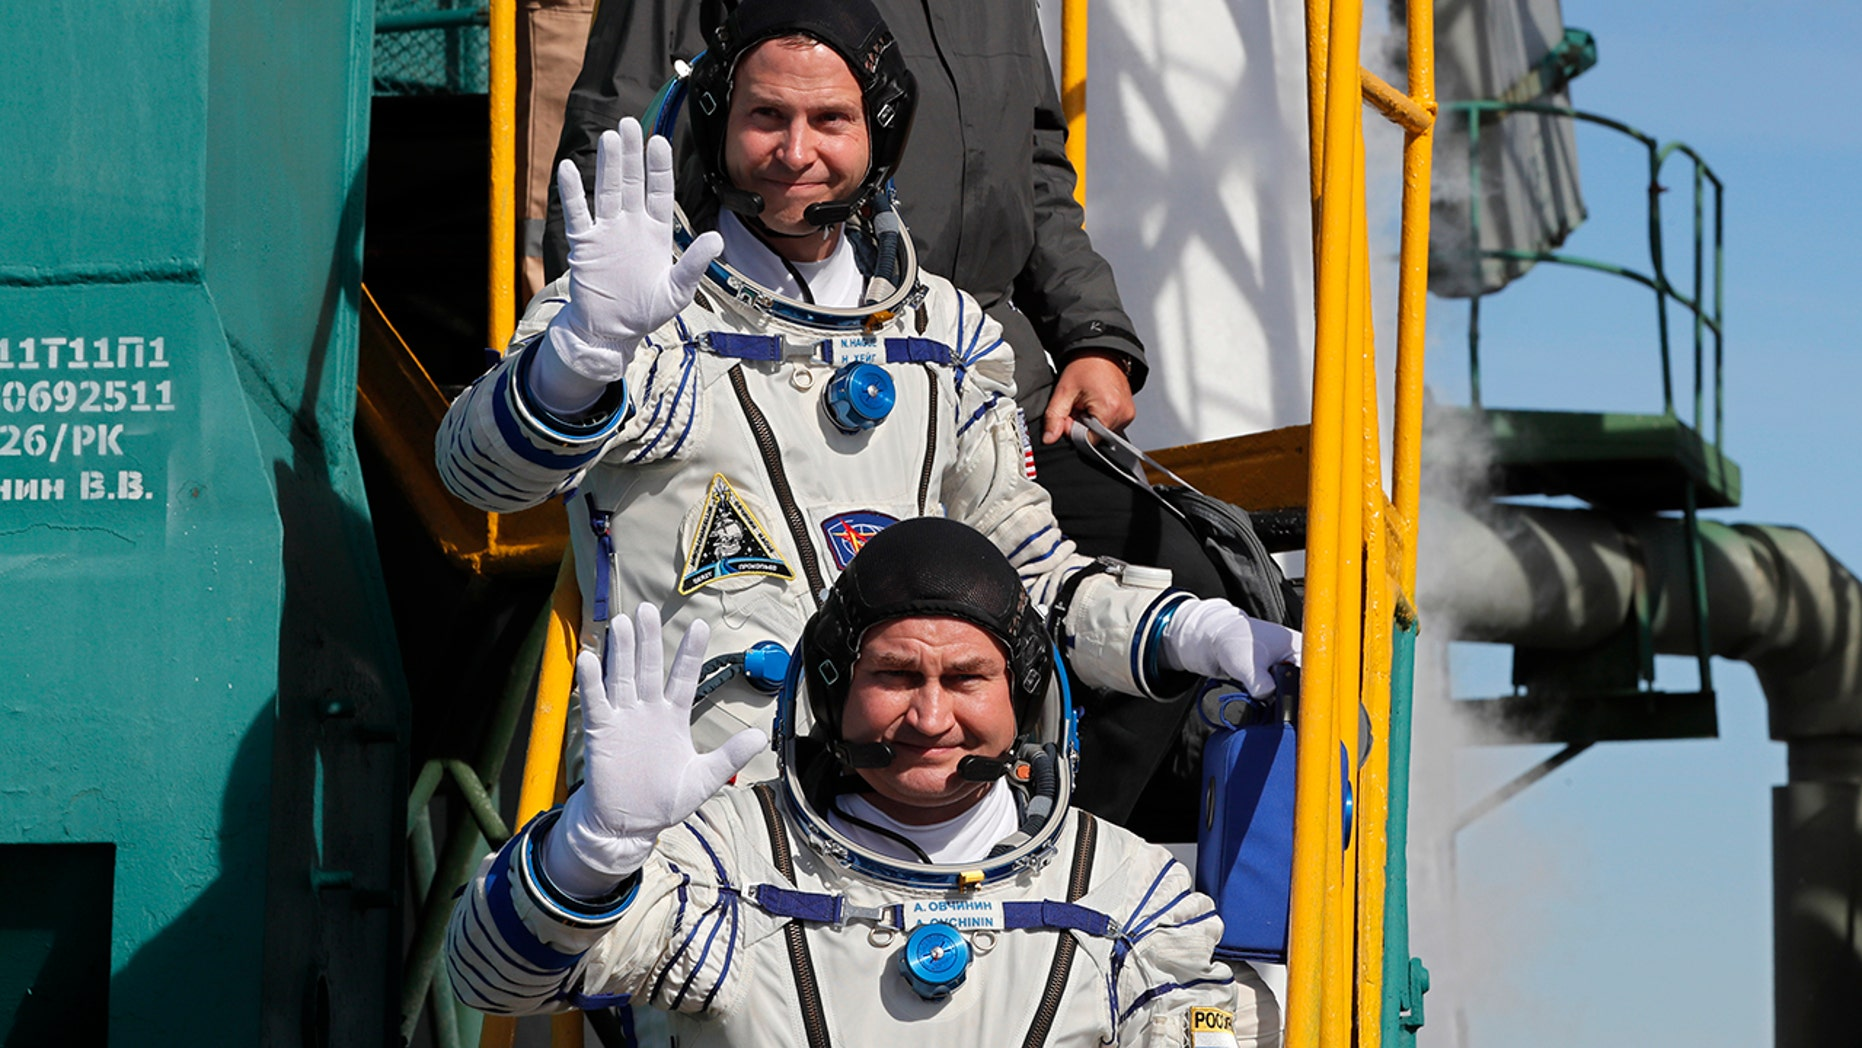 US Ham-Astronaut, Russian Cosmonaut Safe in Wake of Soyuz Launch Failure